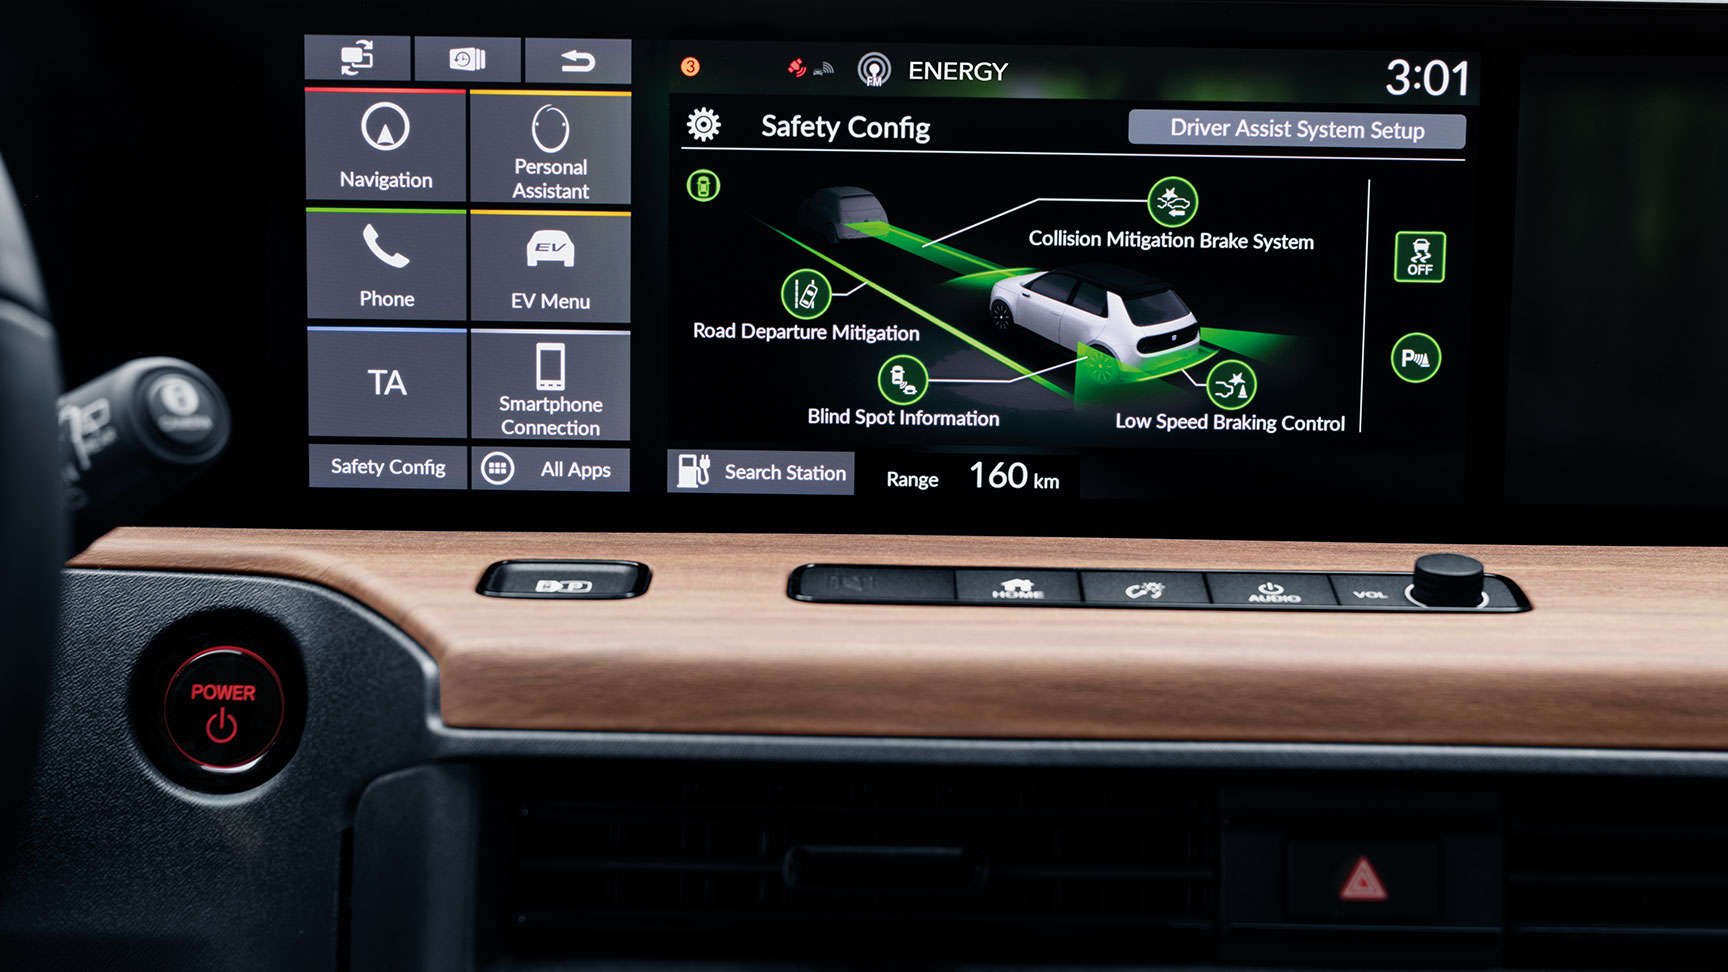 Dashboard screen showing braking control configurations